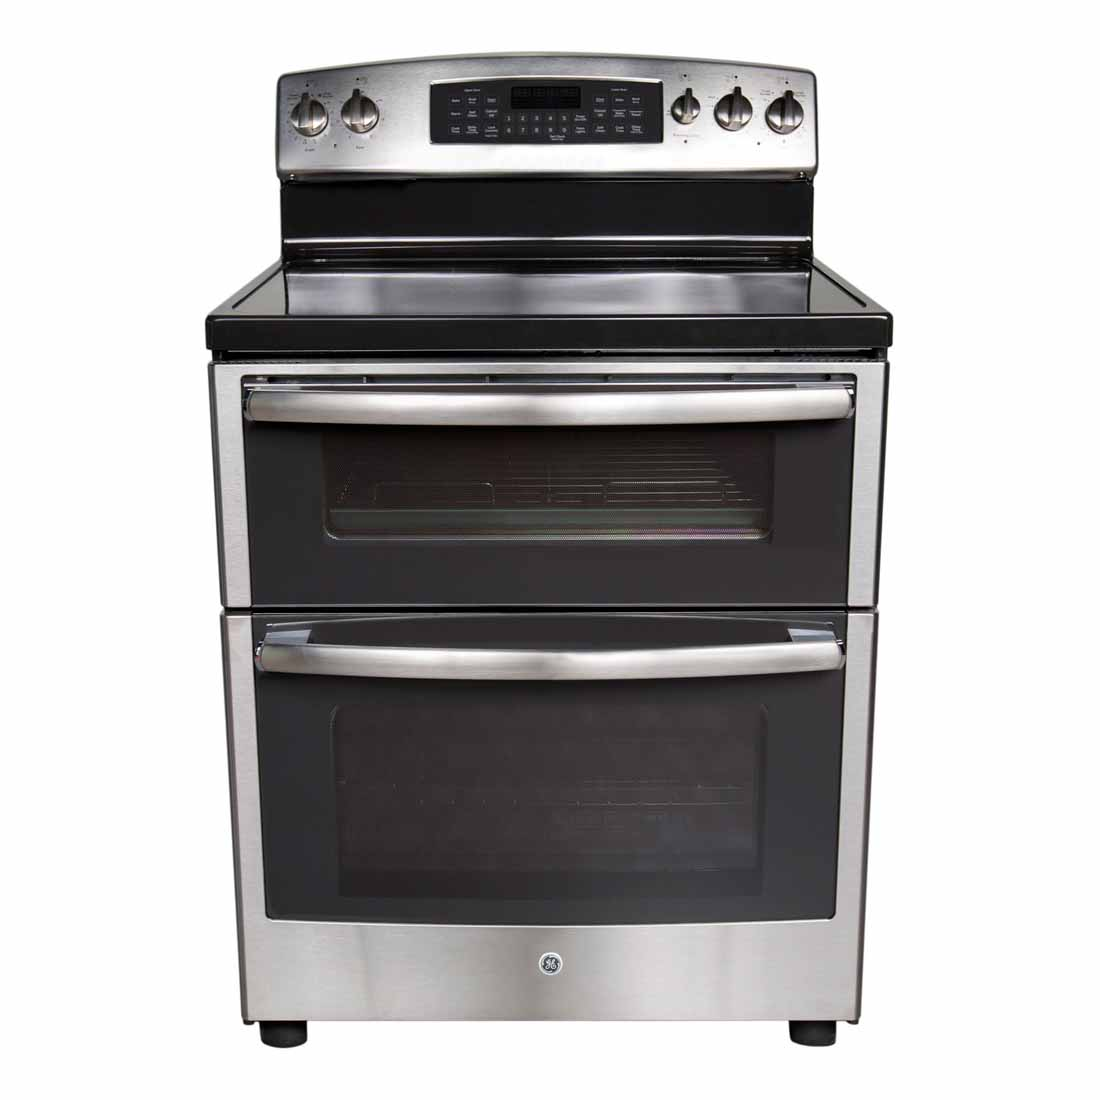 Uncategorized Kitchen Appliance Ratings And Reviews ge 6 cu ft stainless double oven range pb955sfss review